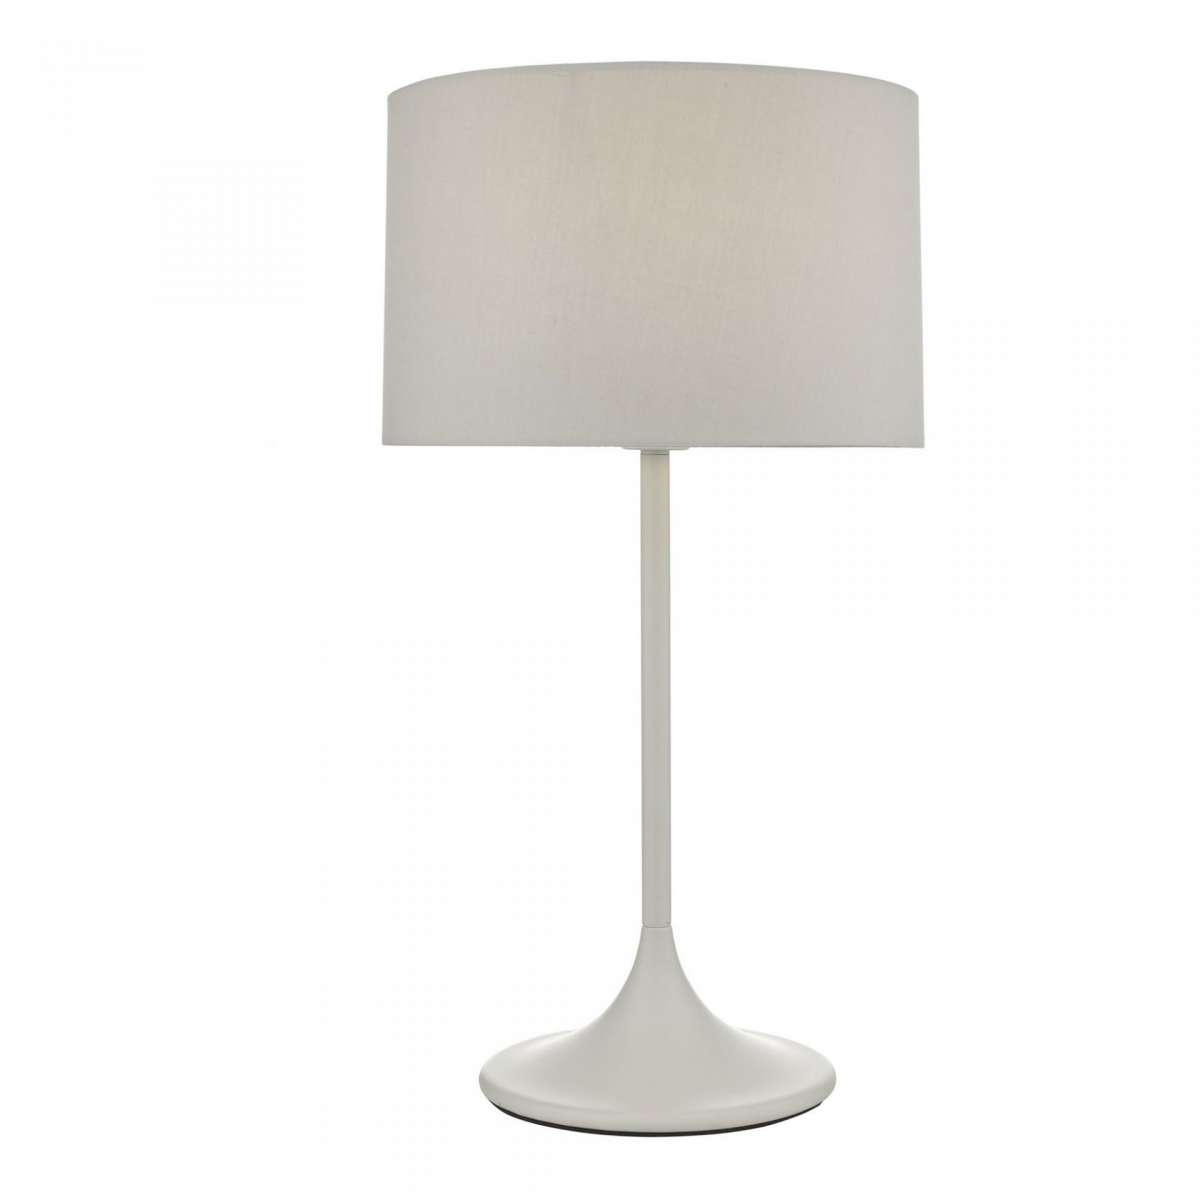 Funchal Table Lamp Grey With Shade